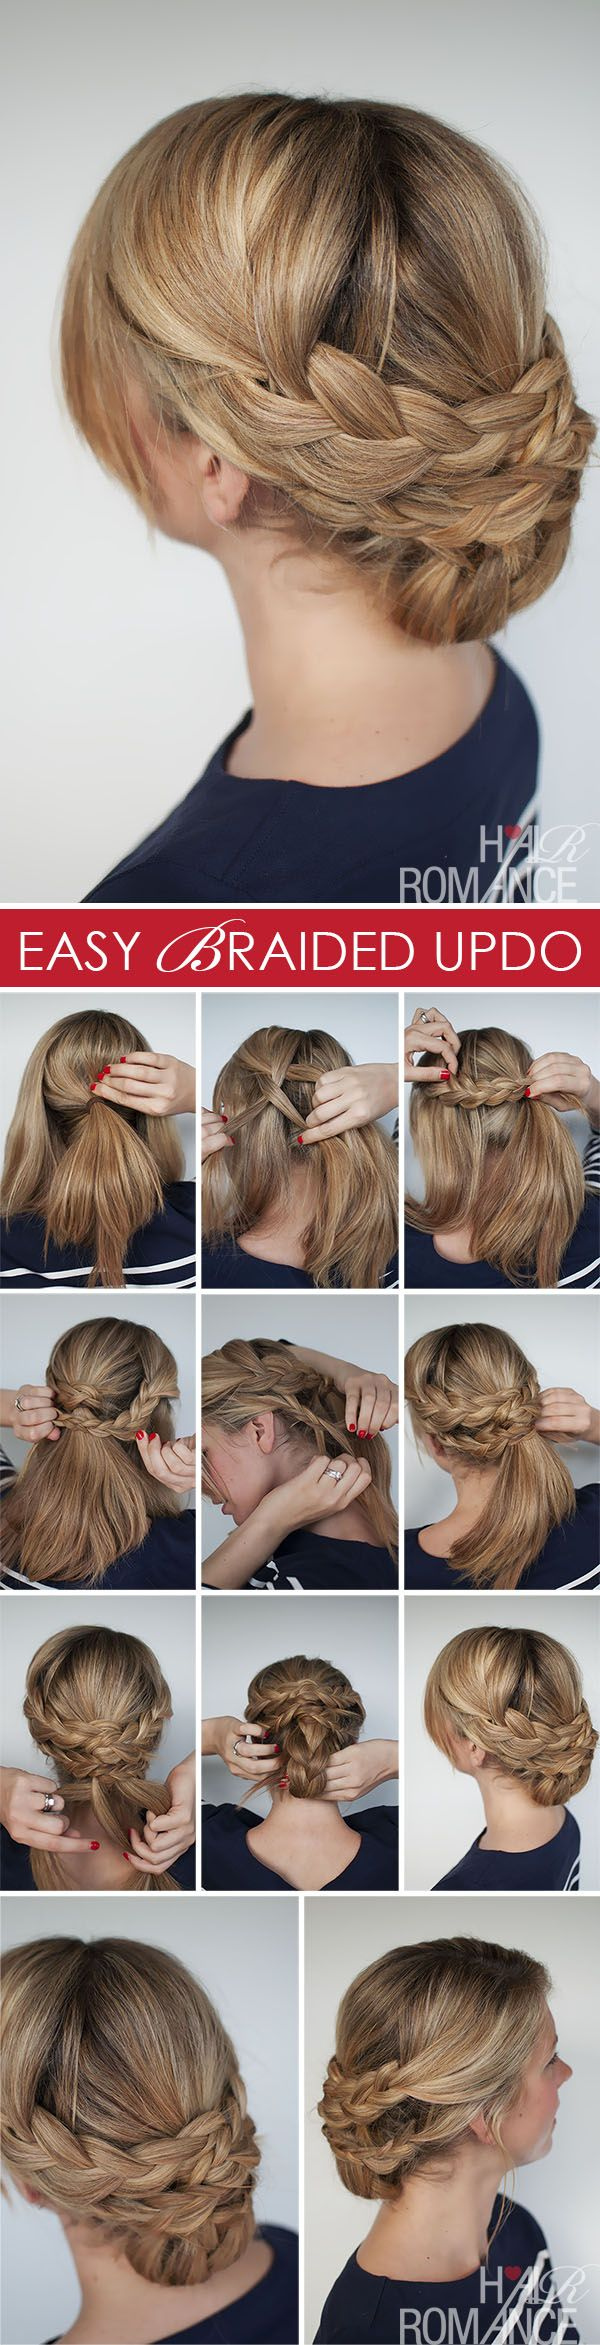 Hairstyle how to - Hair Romance easy braided upstyle tutorial I'll be trying this out this weekend